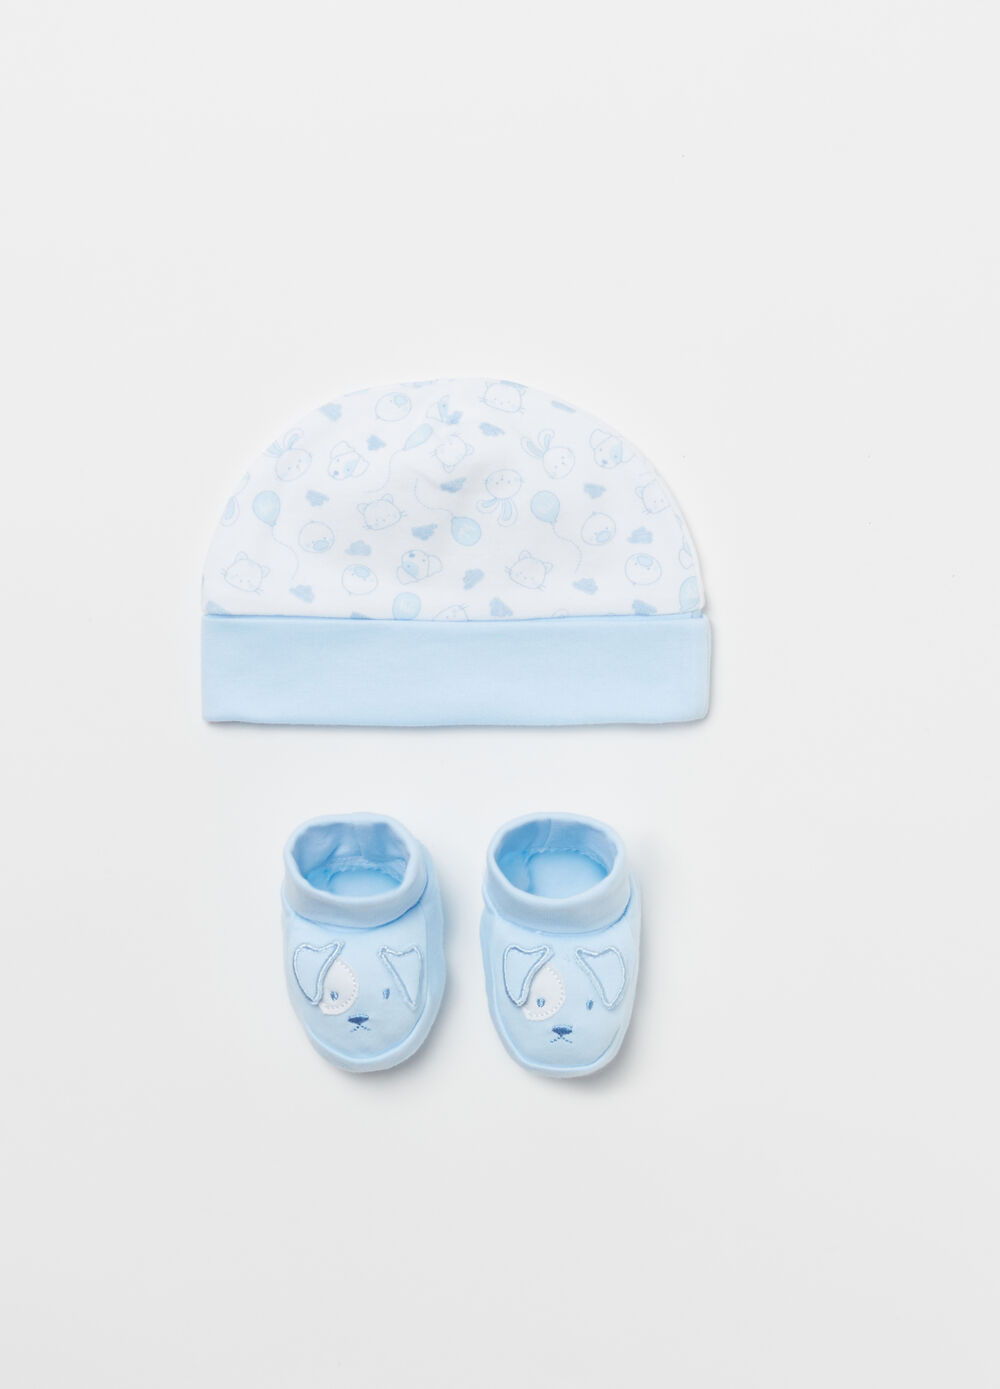 BCI baby shoes and hat with puppy